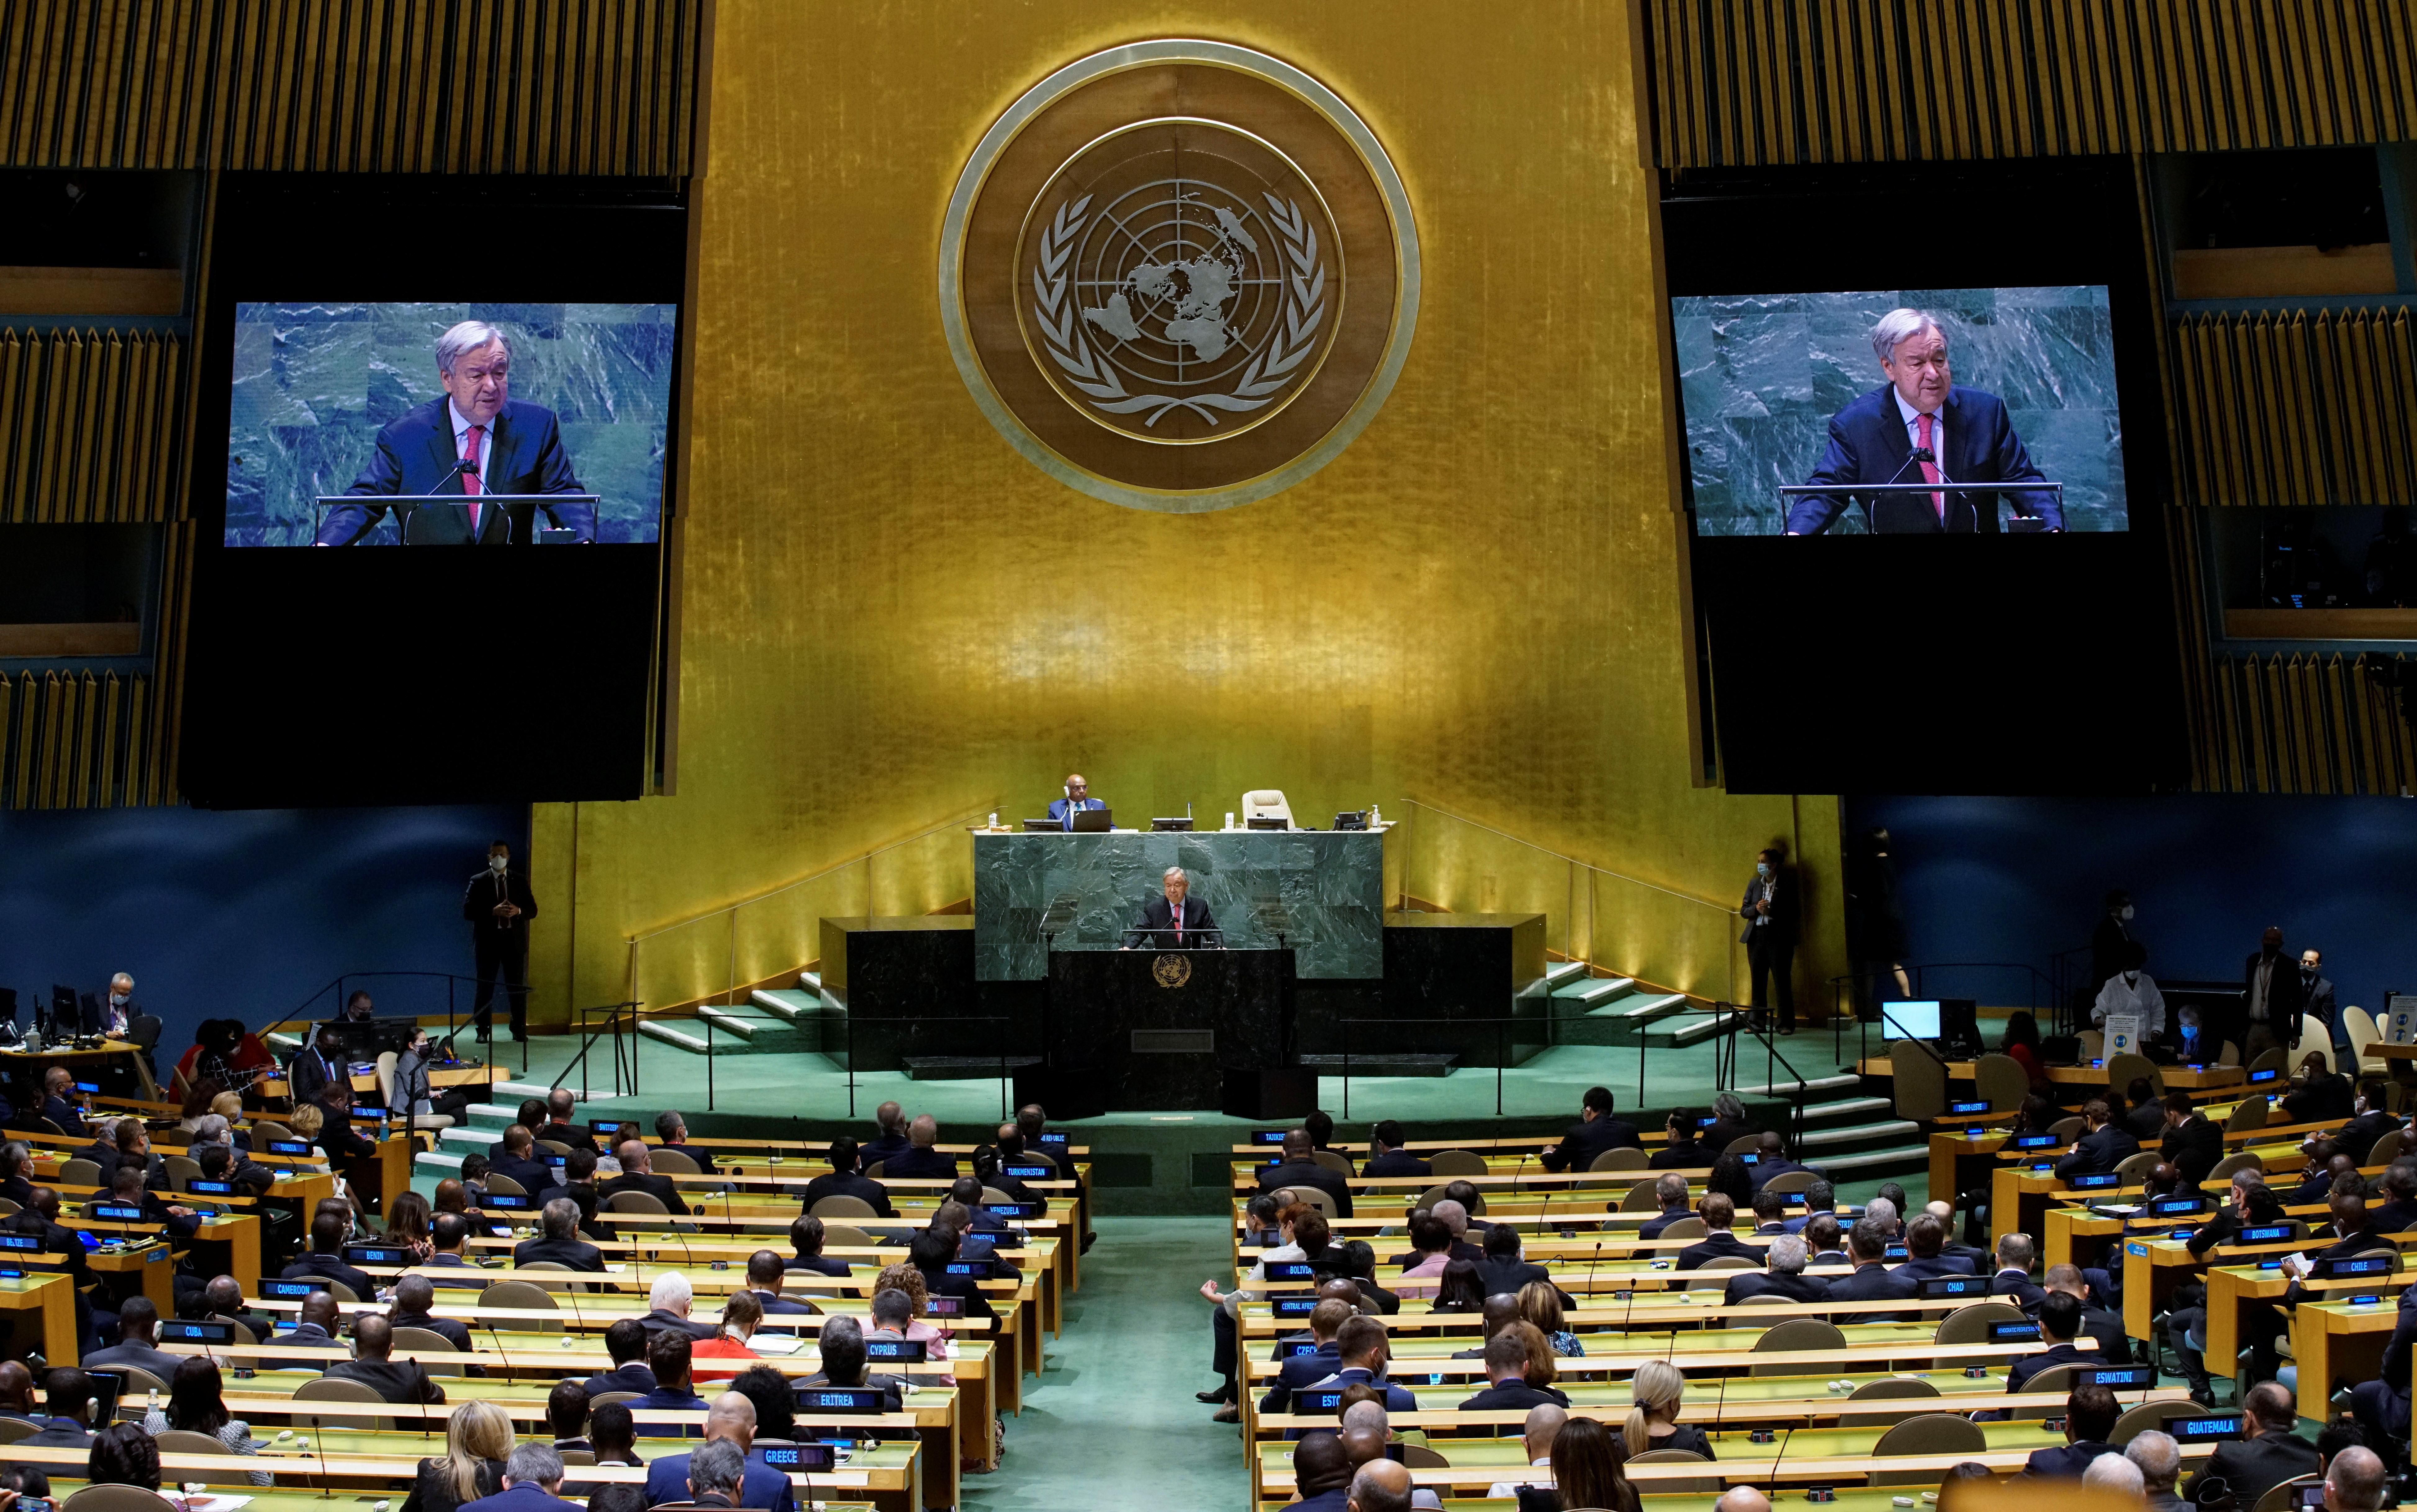 United Nations Secretary-General Antonio Guterres addresses the 76th Session of the U.N. General Assembly in New York City, U.S., September 21, 2021